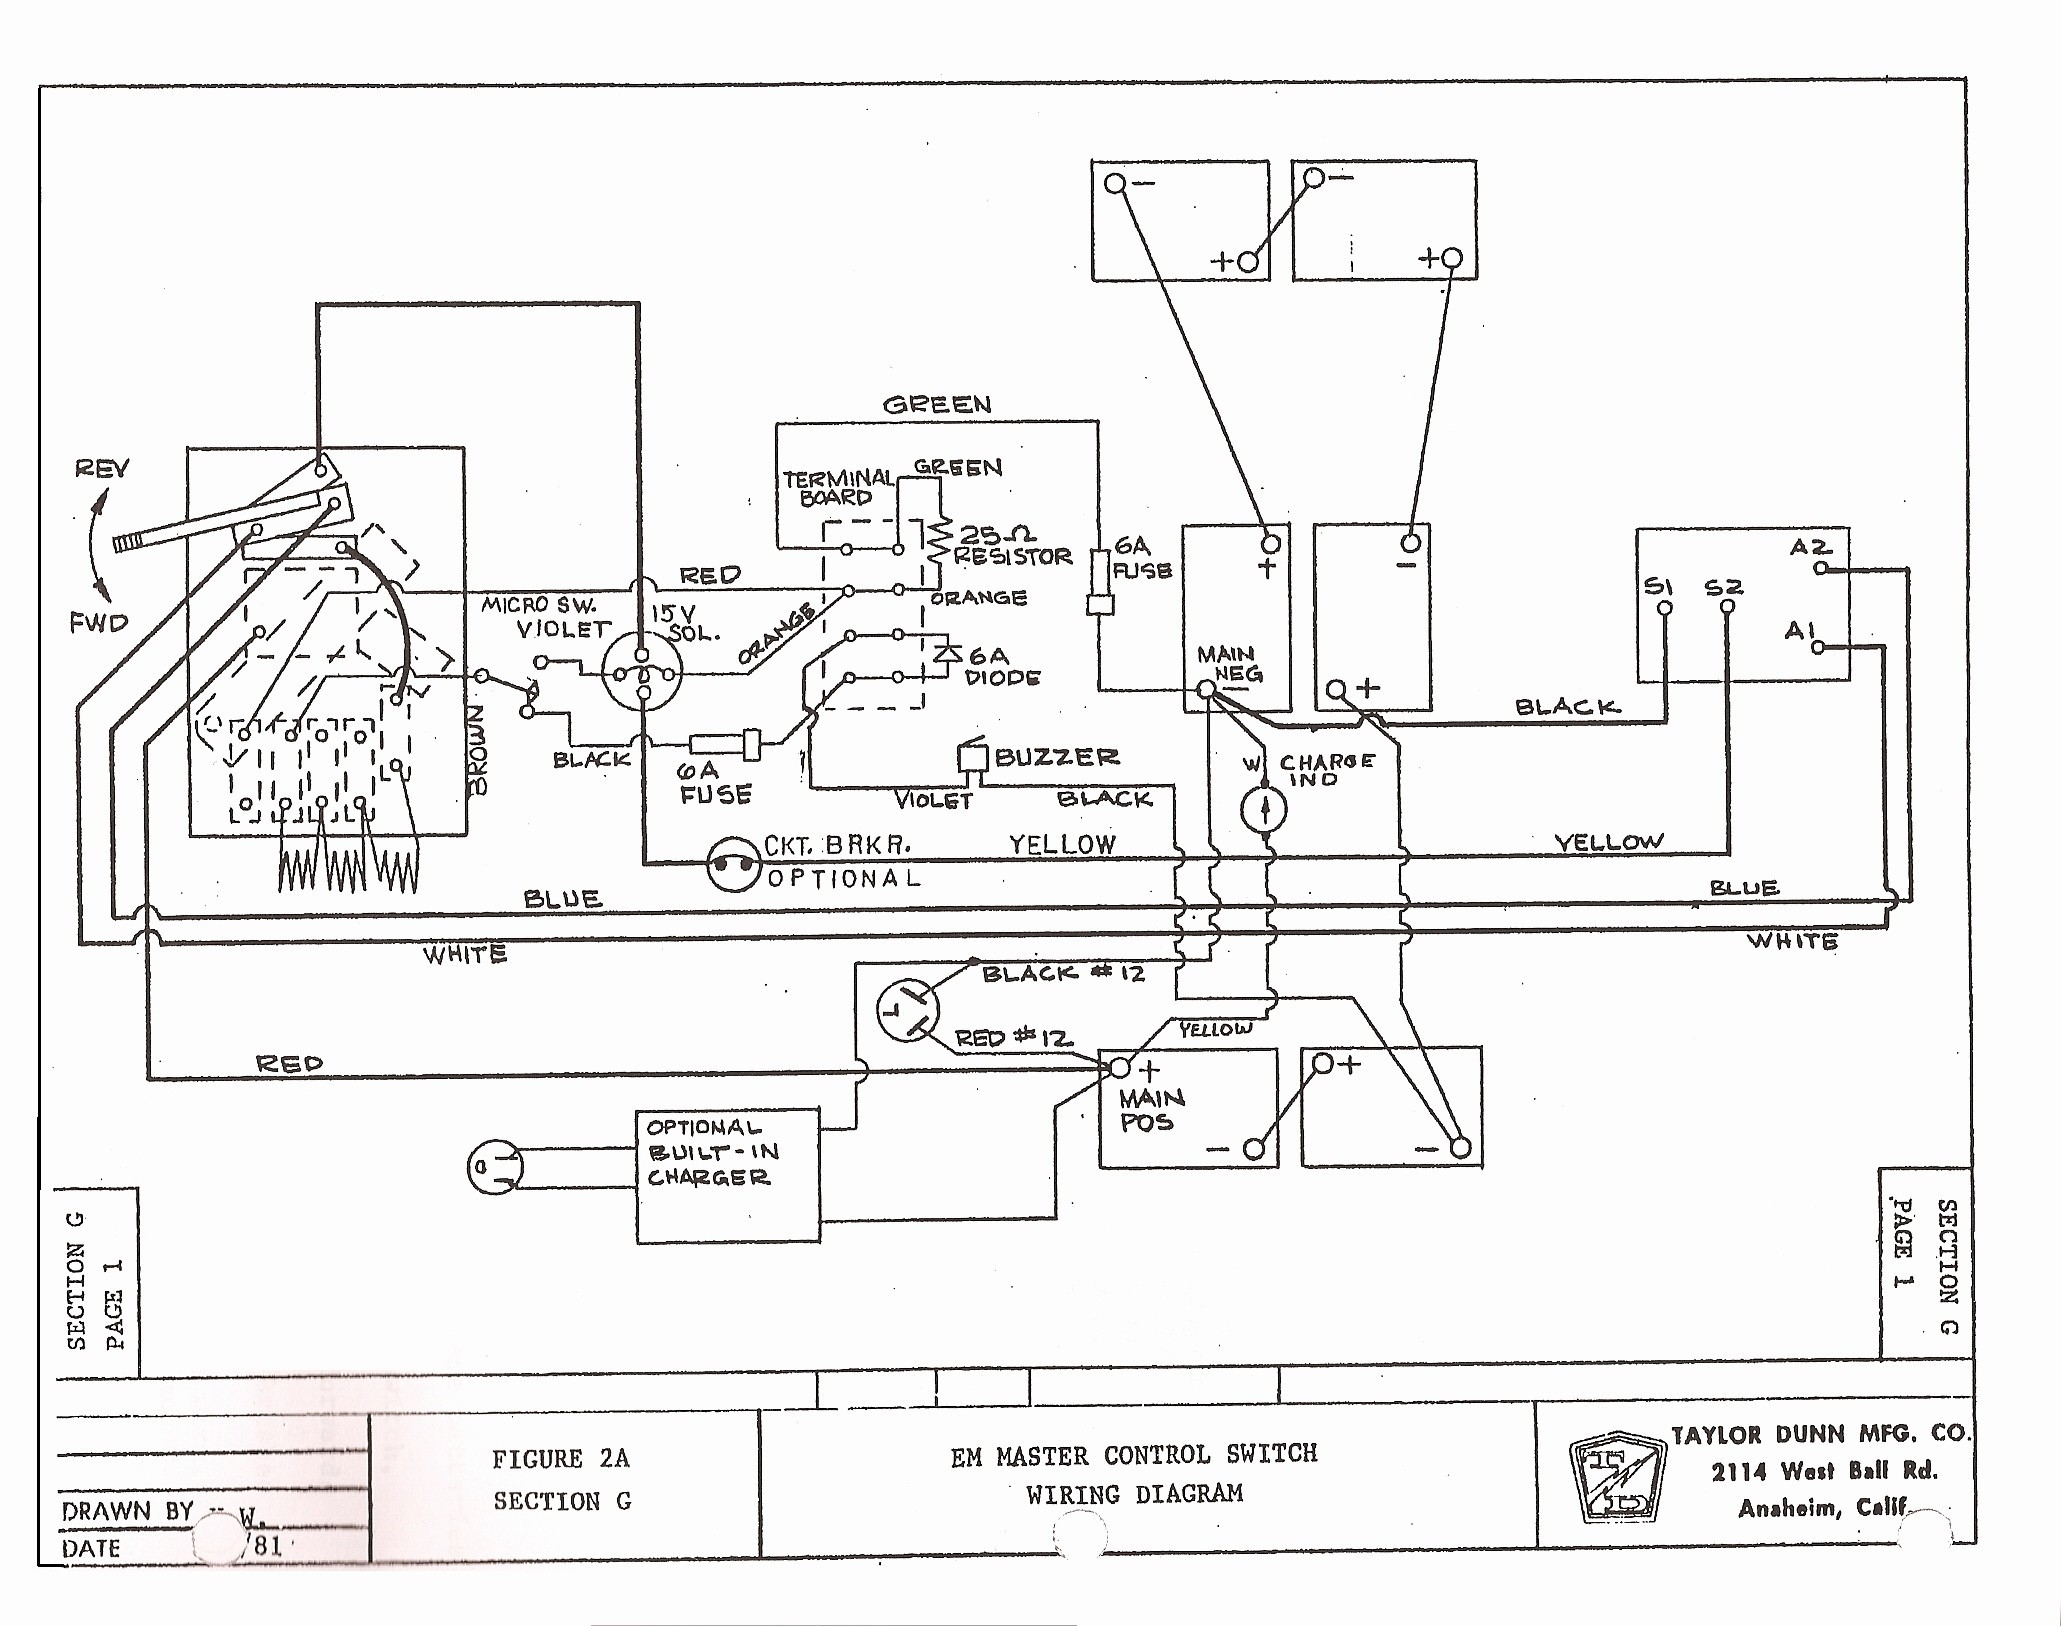 1951 plymouth cranbrook wiring diagram trusted wiring diagrams 1953 plymouth cranbrook parts 1951 plymouth cranbrook wiring diagram circuit diagram symbols \\u2022 1951 plymouth business coupe 1951 plymouth cranbrook wiring diagram